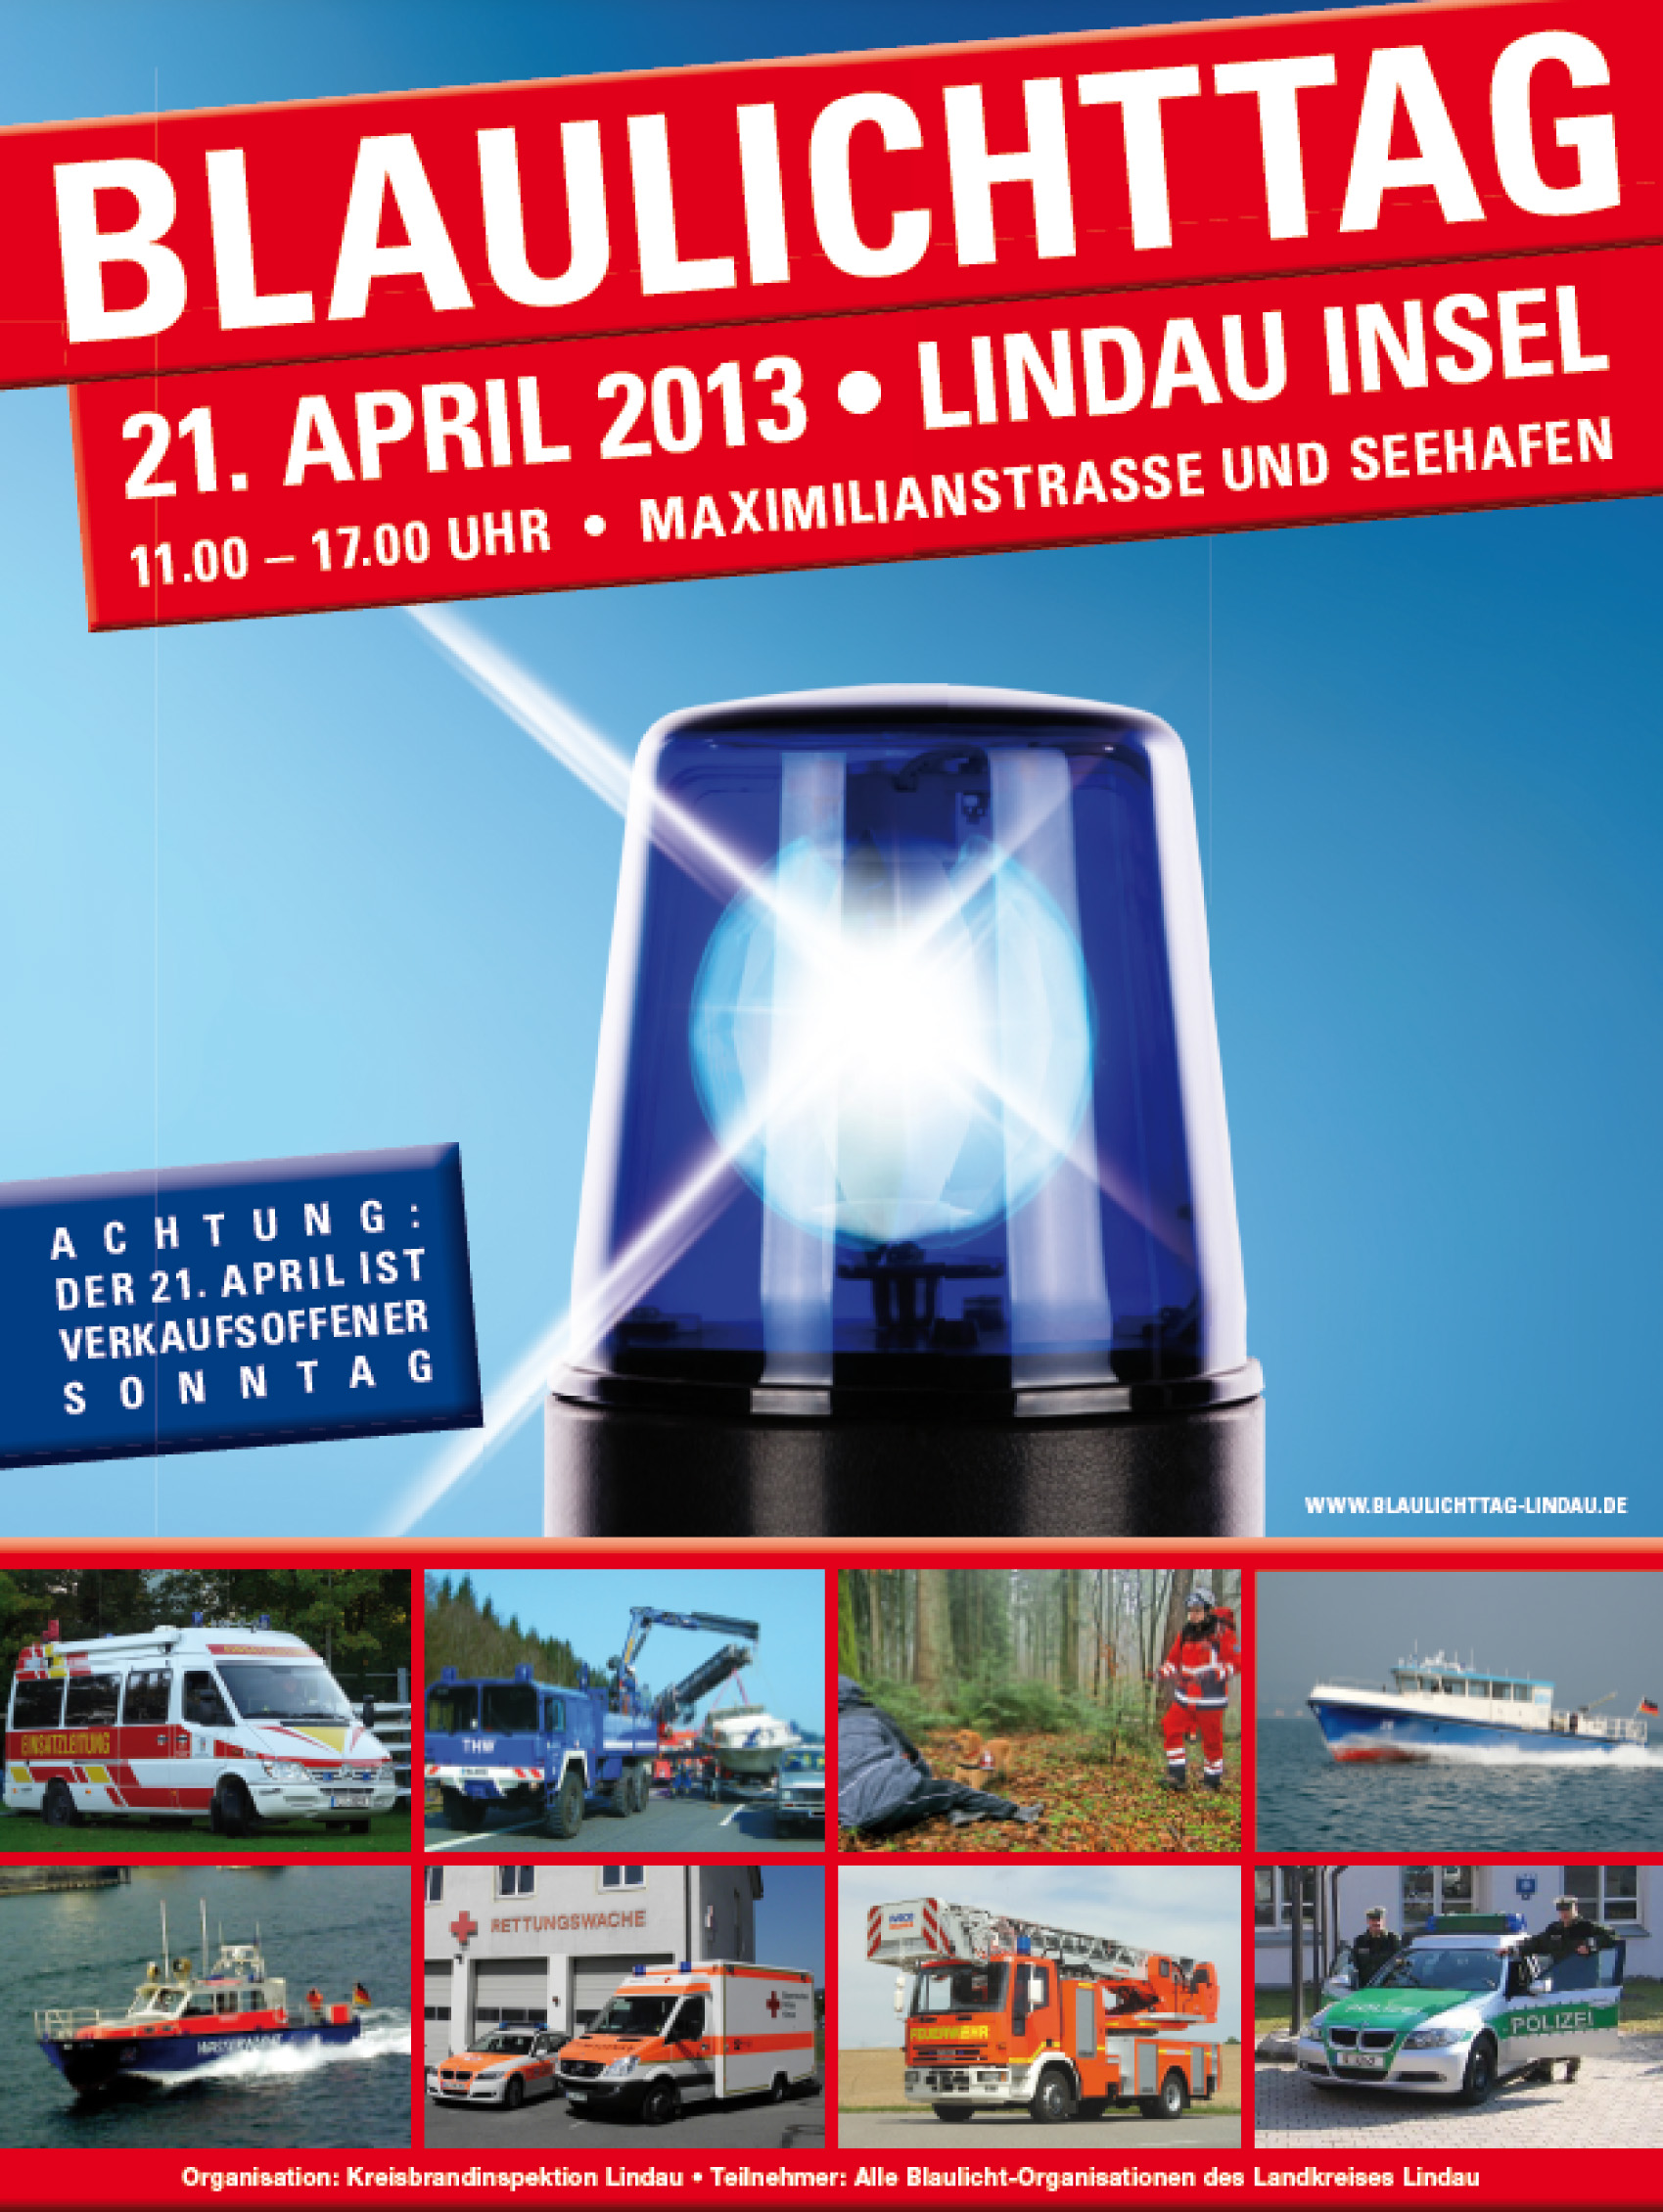 lindauer blaulichttag 21-04-2013 info-plakat new-facts-eu